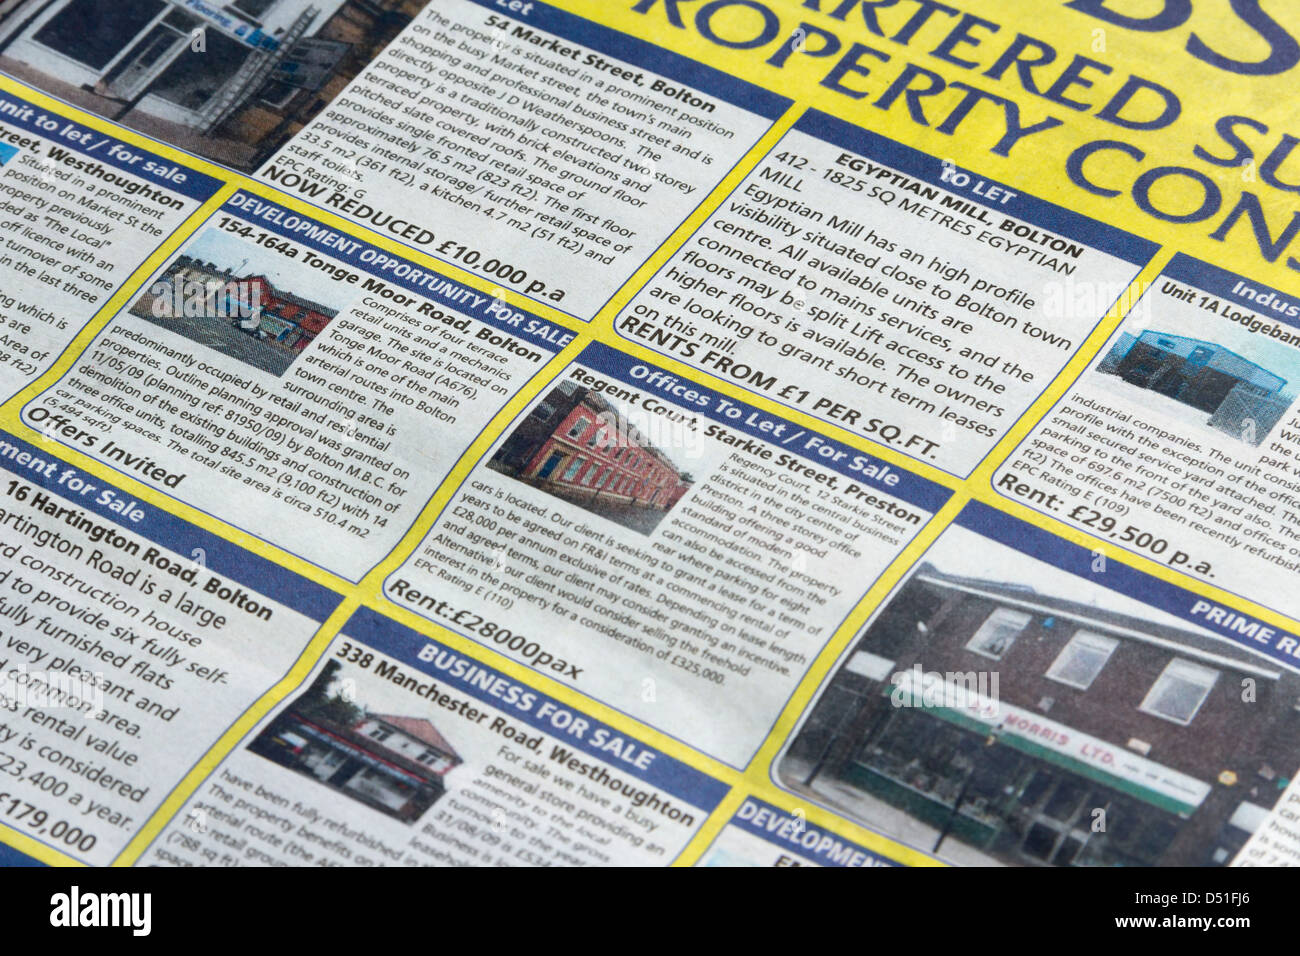 Commercial and business property adverts in the Bolton News, a local daily newspaper, published six days per week. - Stock Image